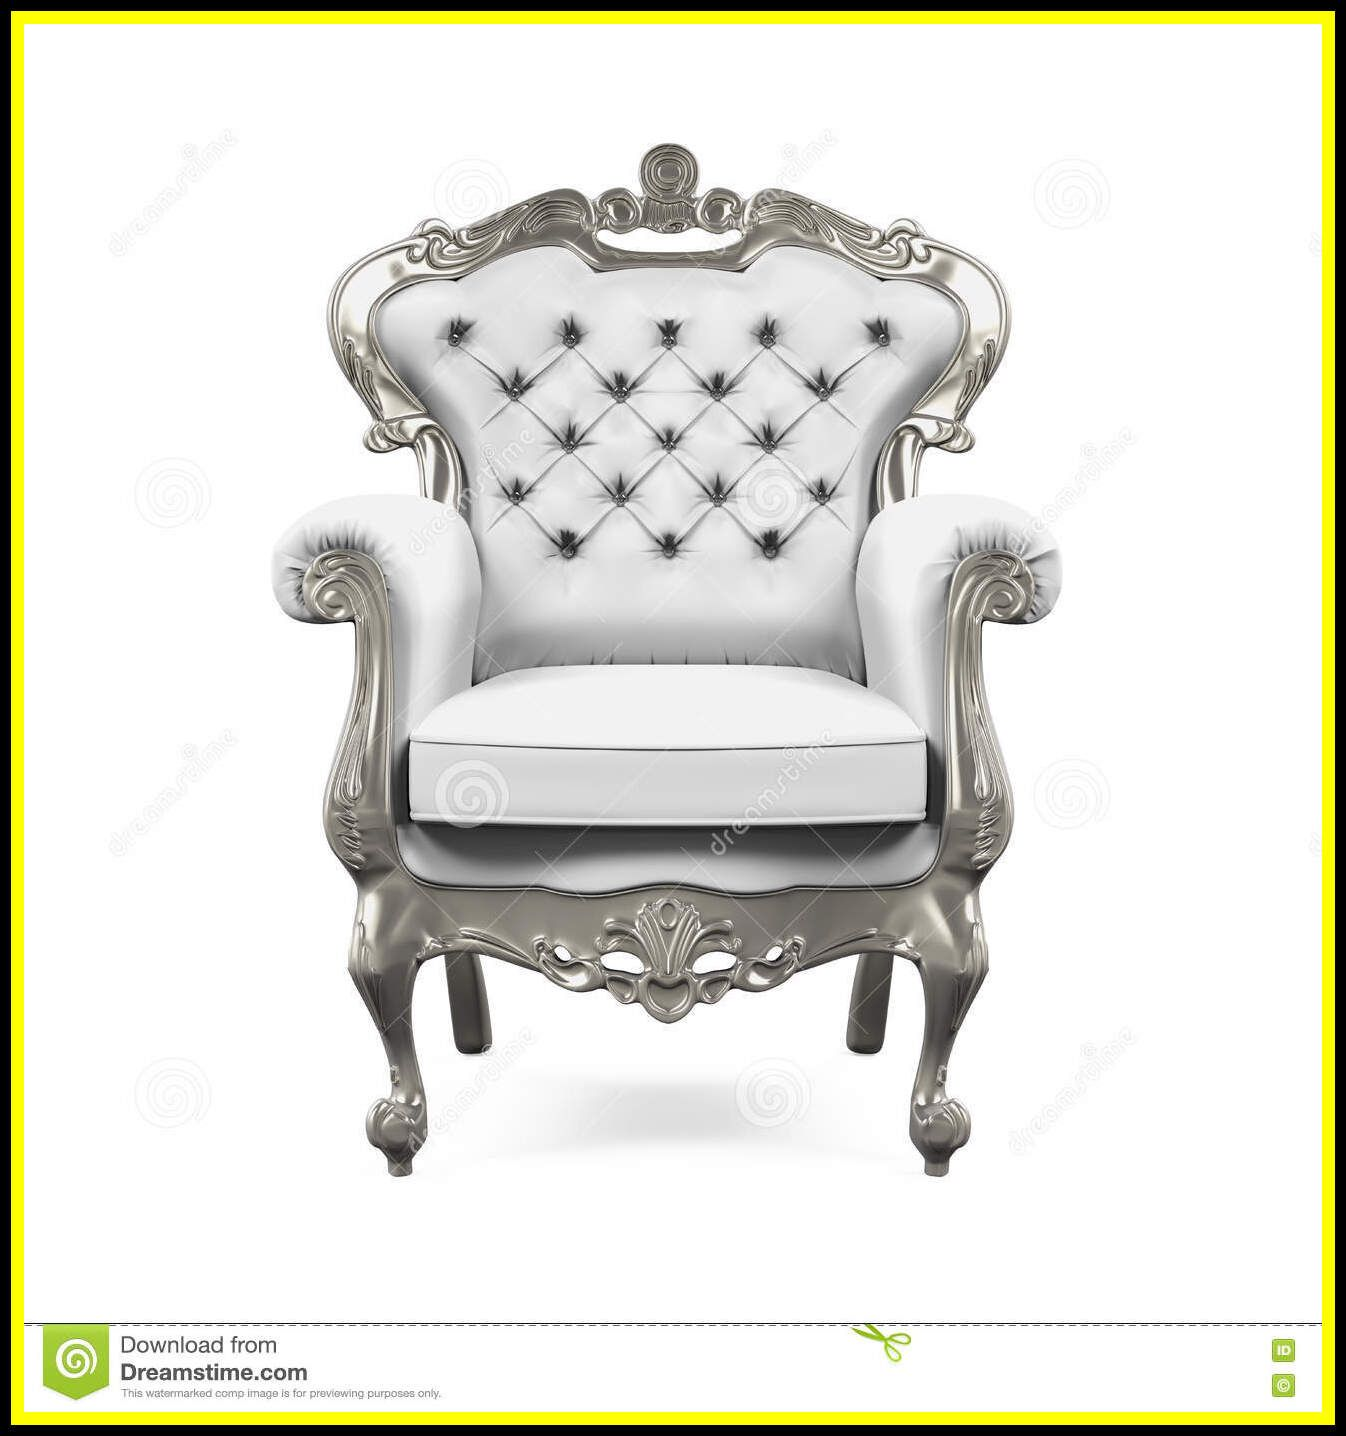 114 Reference Of Red Chair White Background In 2020 Red Chair Chair Luxury Chairs